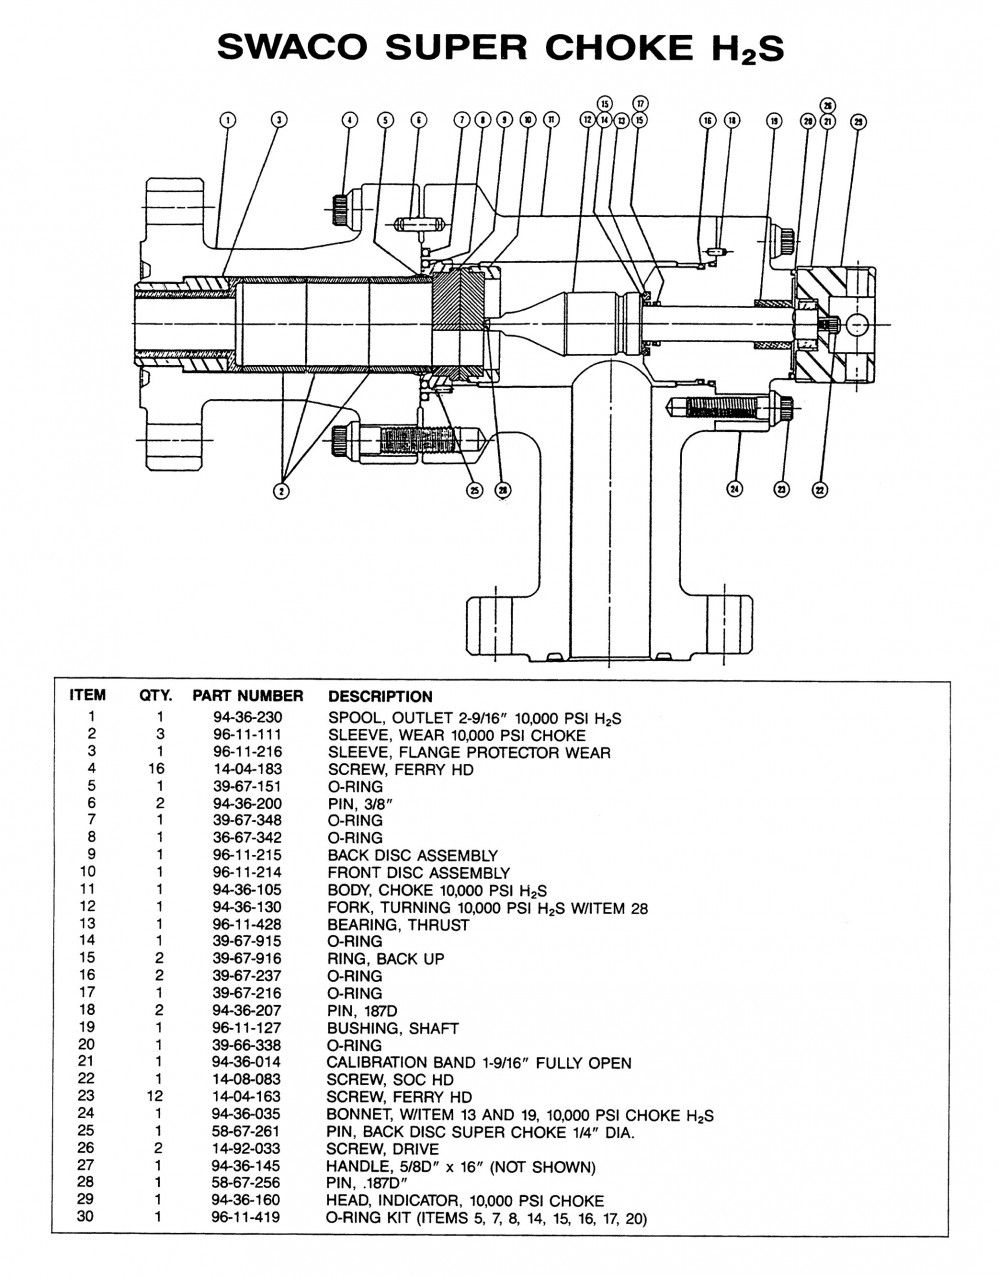 Replacement Parts Data Sheets › Pressure Control Systems